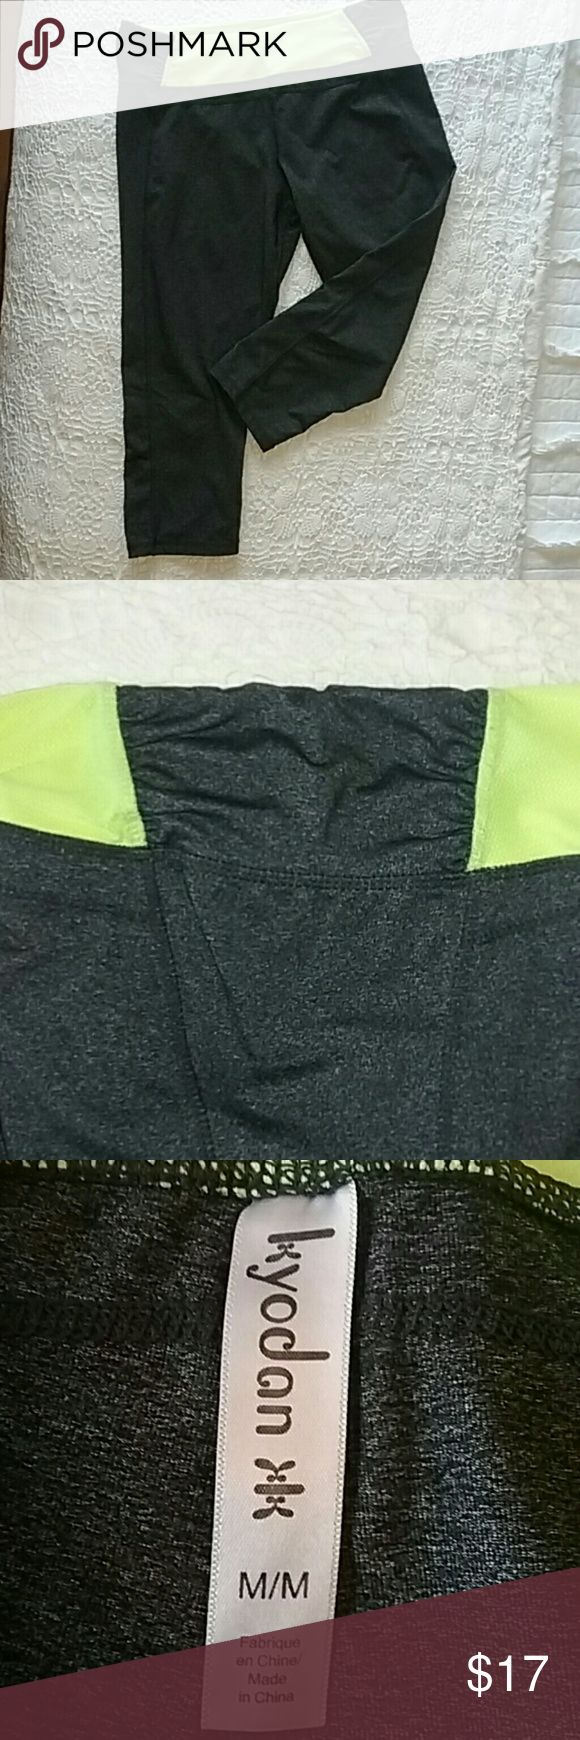 Kyodon yoga capris Cute and flattering on! Love the ruched sides. Color is charcoal and neon yellow/ green. Gently worn. kyodon Pants Capris